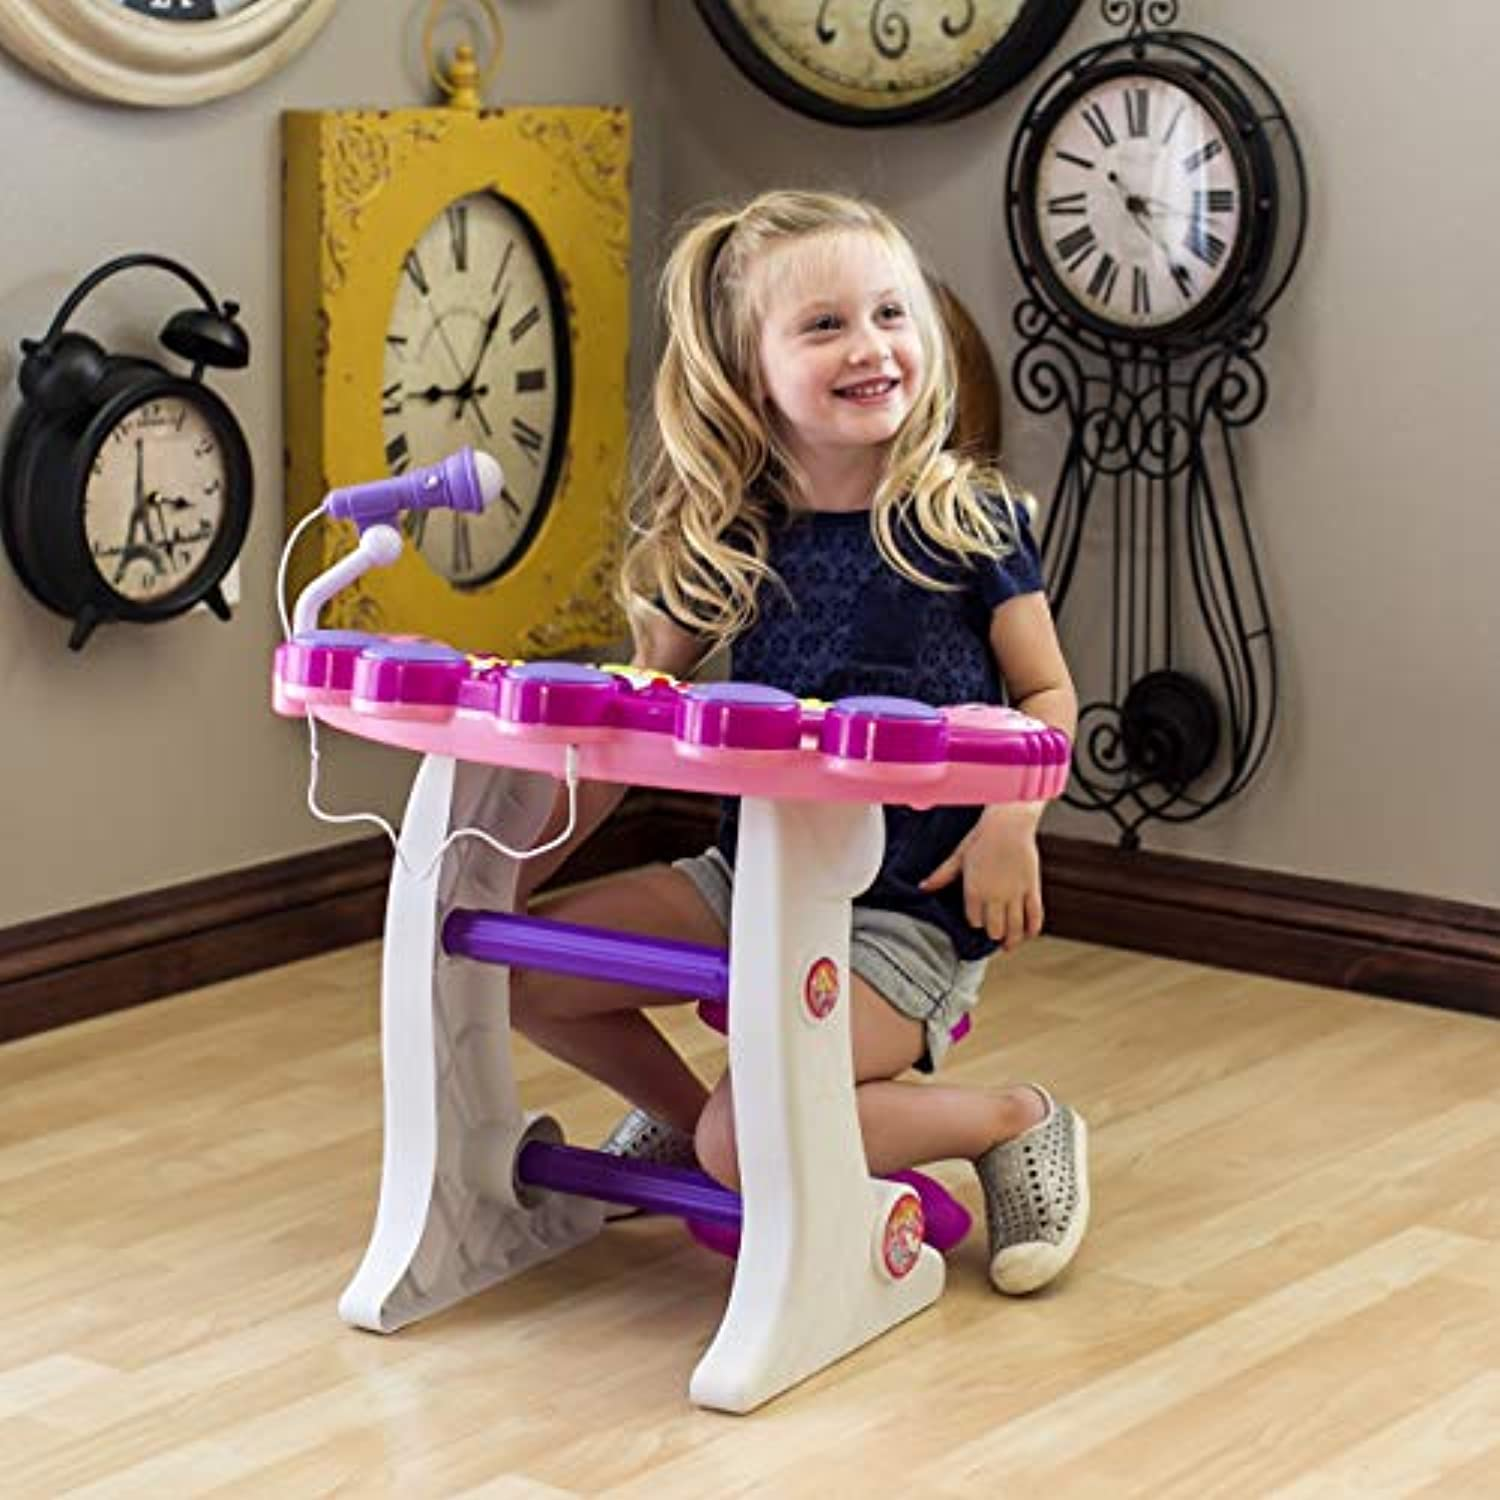 Classier: Buy Best Choice Products Best Choice Products 37-Key Kids Electronic Piano Keyboard w/ Record and Playback, Microphone, Synthesizer, Stool - Pink